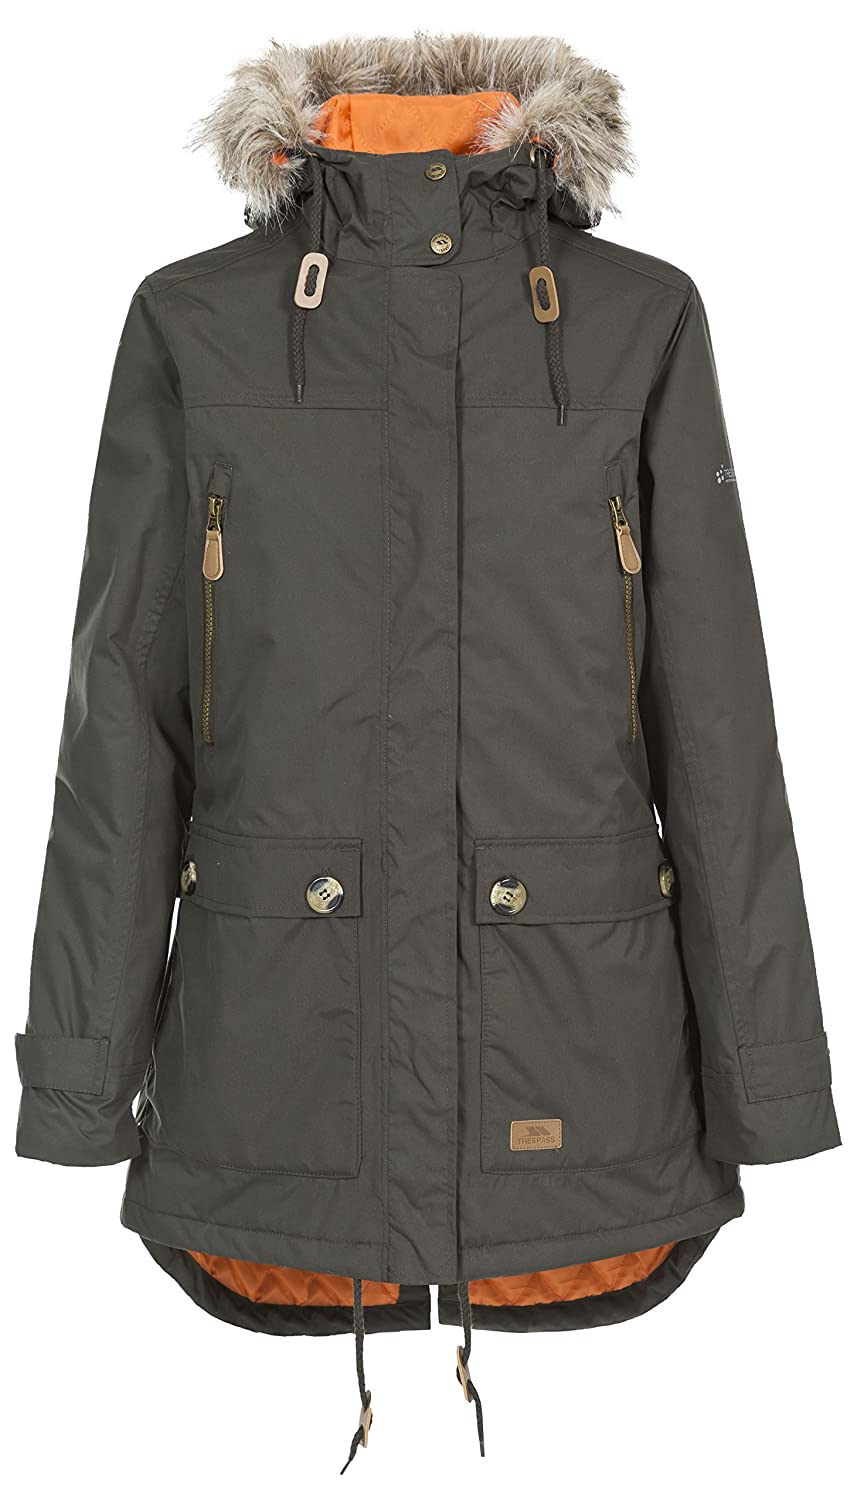 Trespass Women's Clea Jacket: Amazon.co.uk: Sports & Outdoors